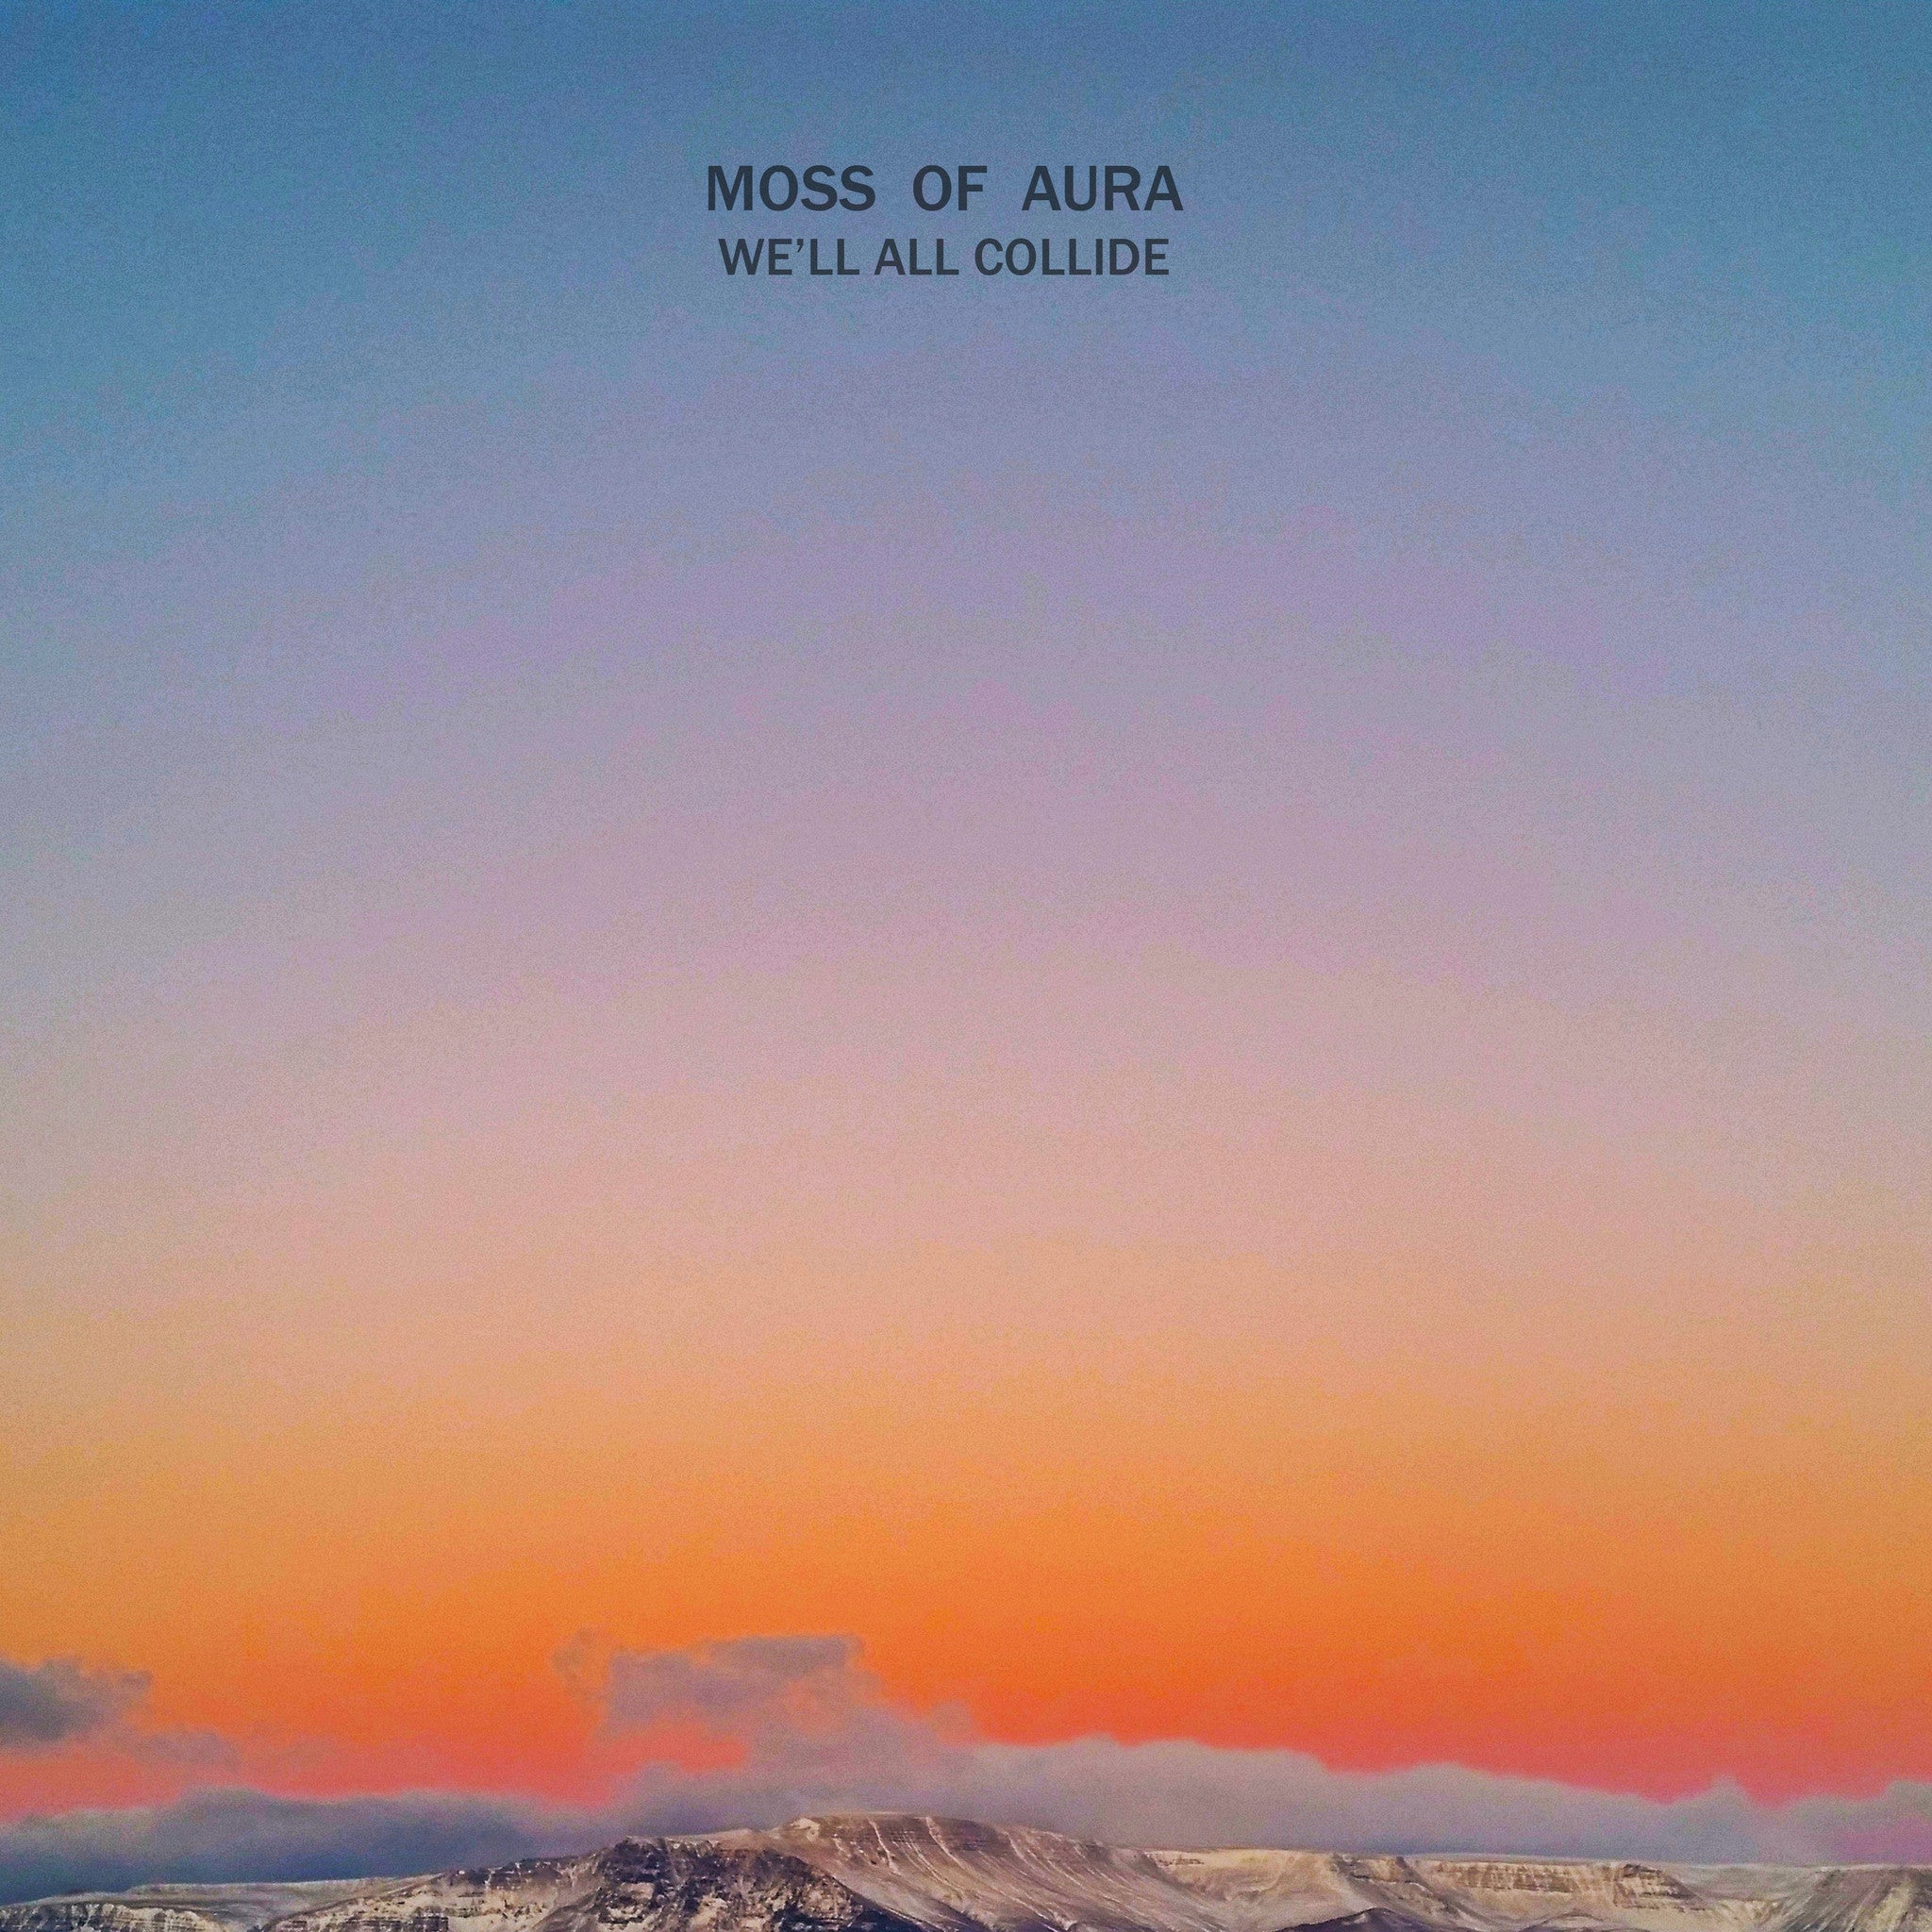 Moss of Aura (Gerrit Welmers of Future Islands!) - We'll All Collide - New Vinyl Record 2016 Friends Records LP - Electronic / Synthwave / V. Chill